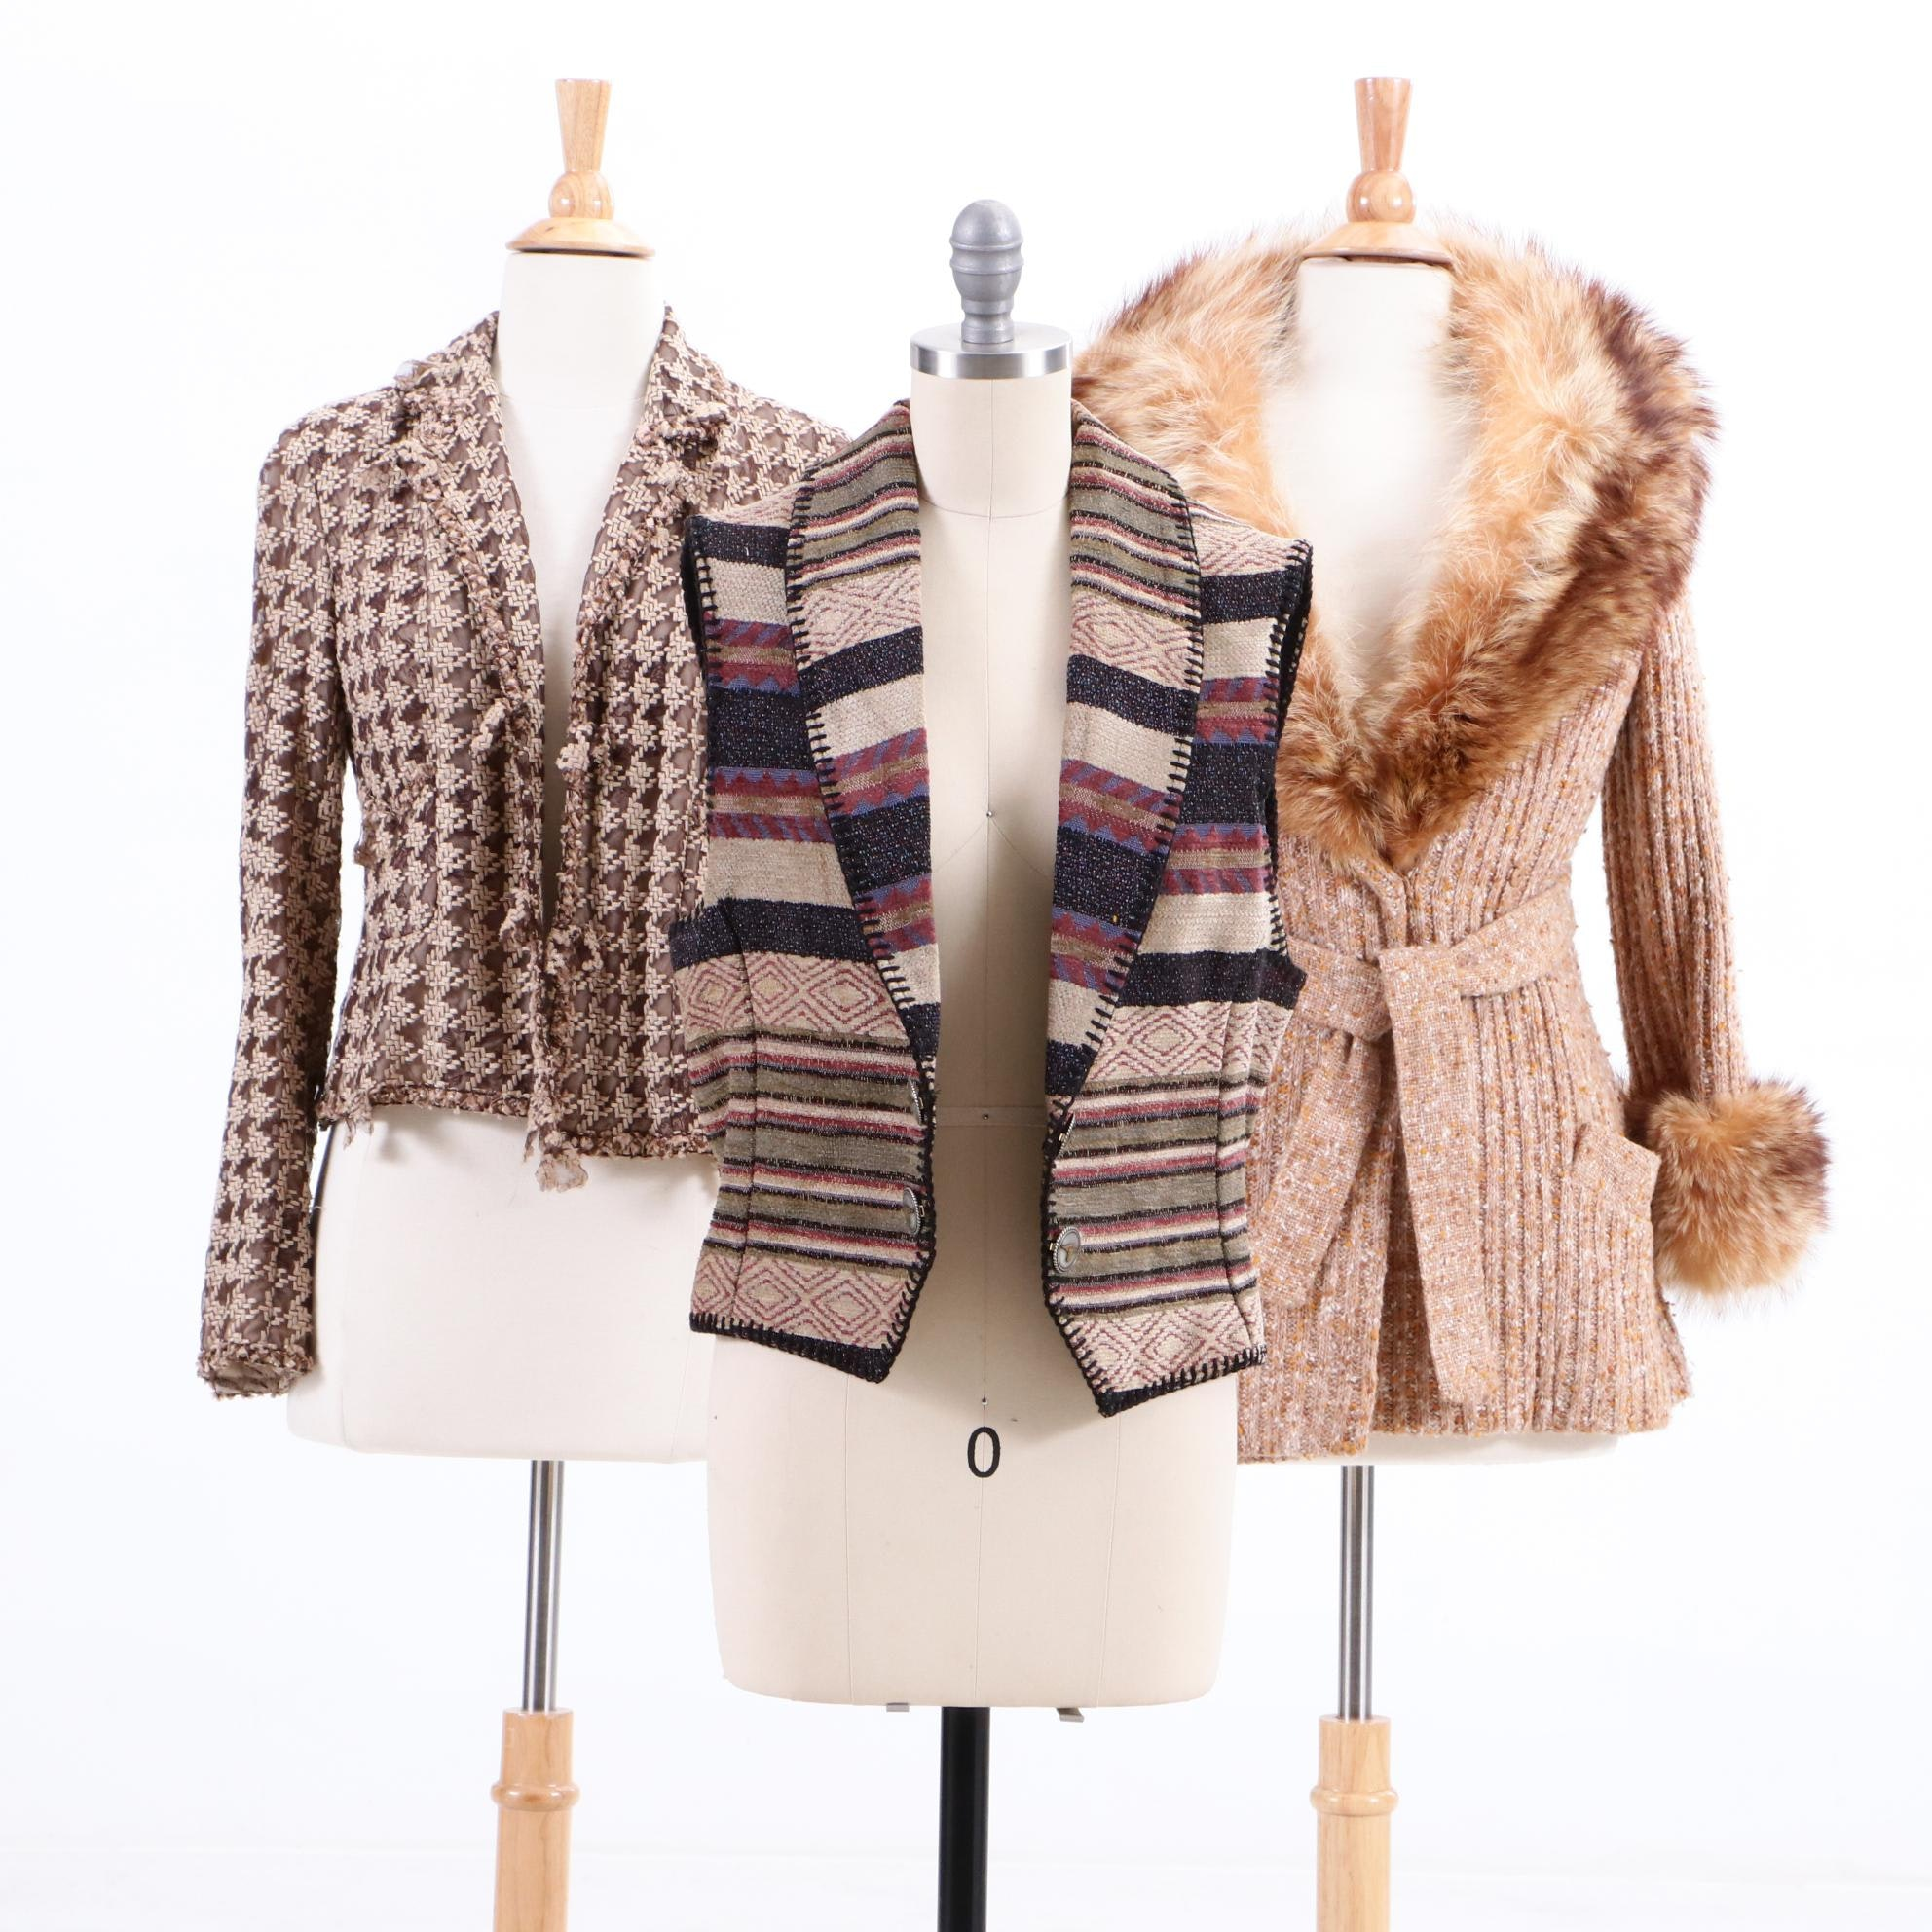 Clarendon Henry Friedricks Raccoon Fur Trimmed Jacket and Other Separates